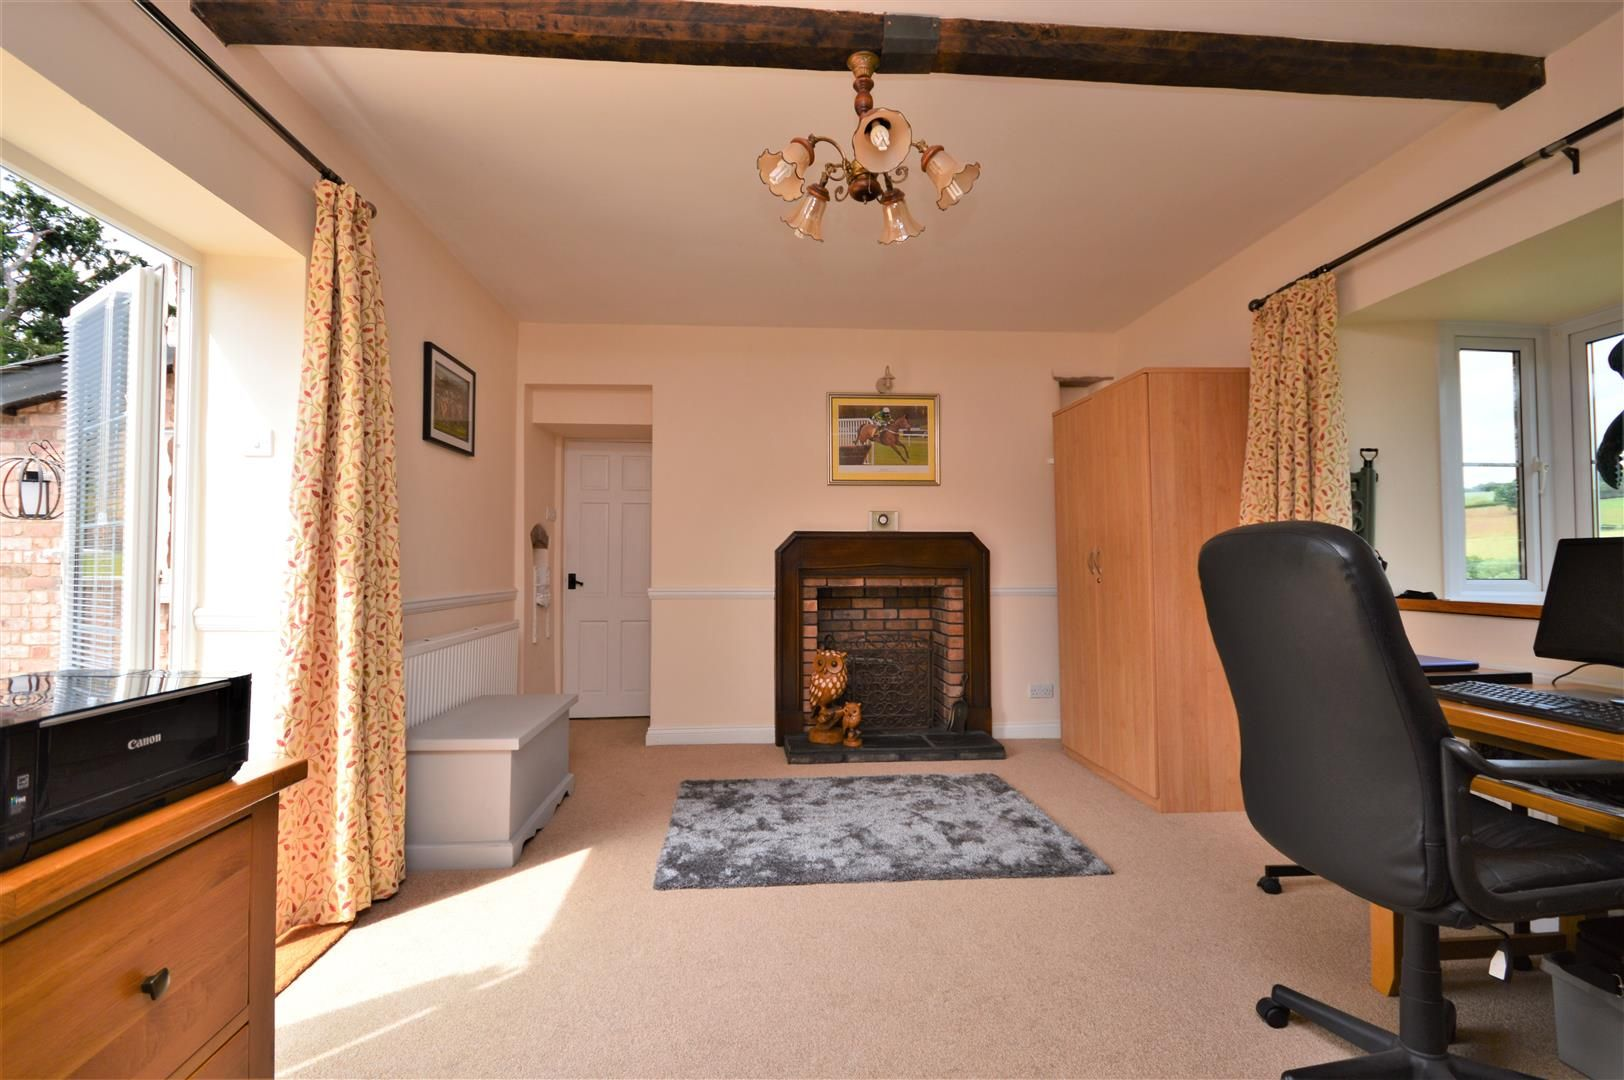 3 bed detached for sale in Orcop  - Property Image 14